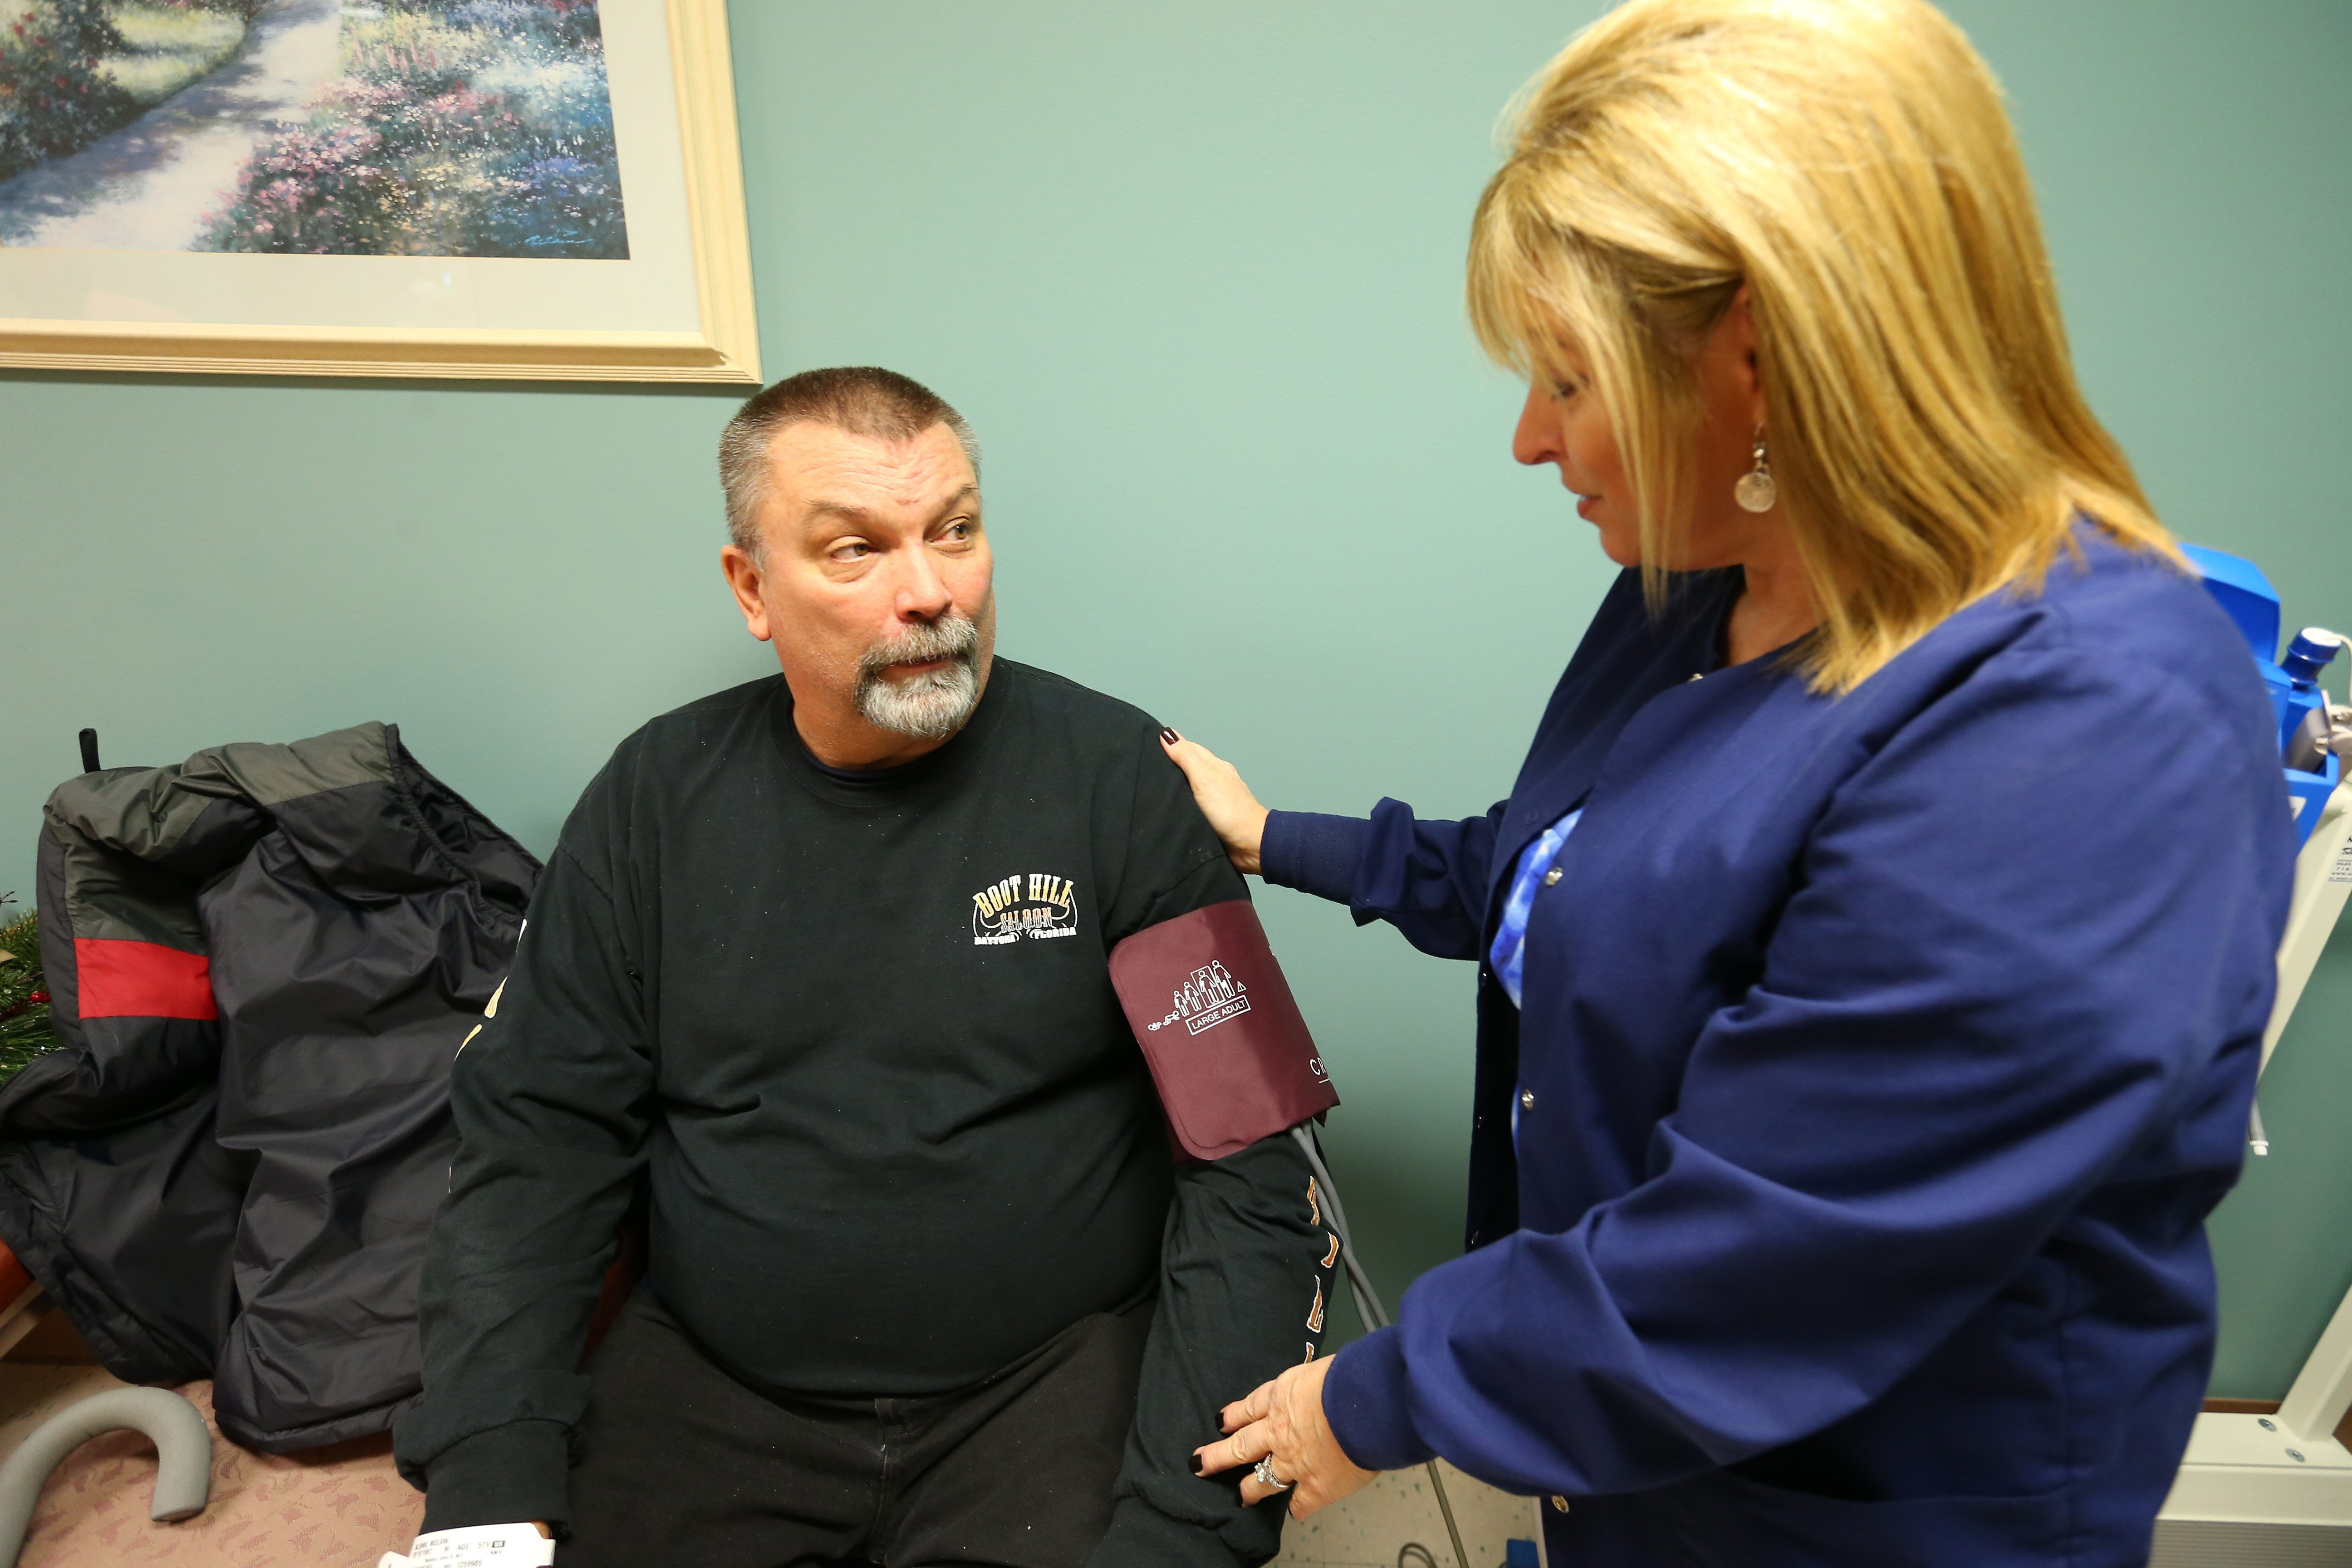 Melvin Bluhm has his blood pressure checked by Marsha Cleland, a registered nurse at Kenmore Mercy Hospital.